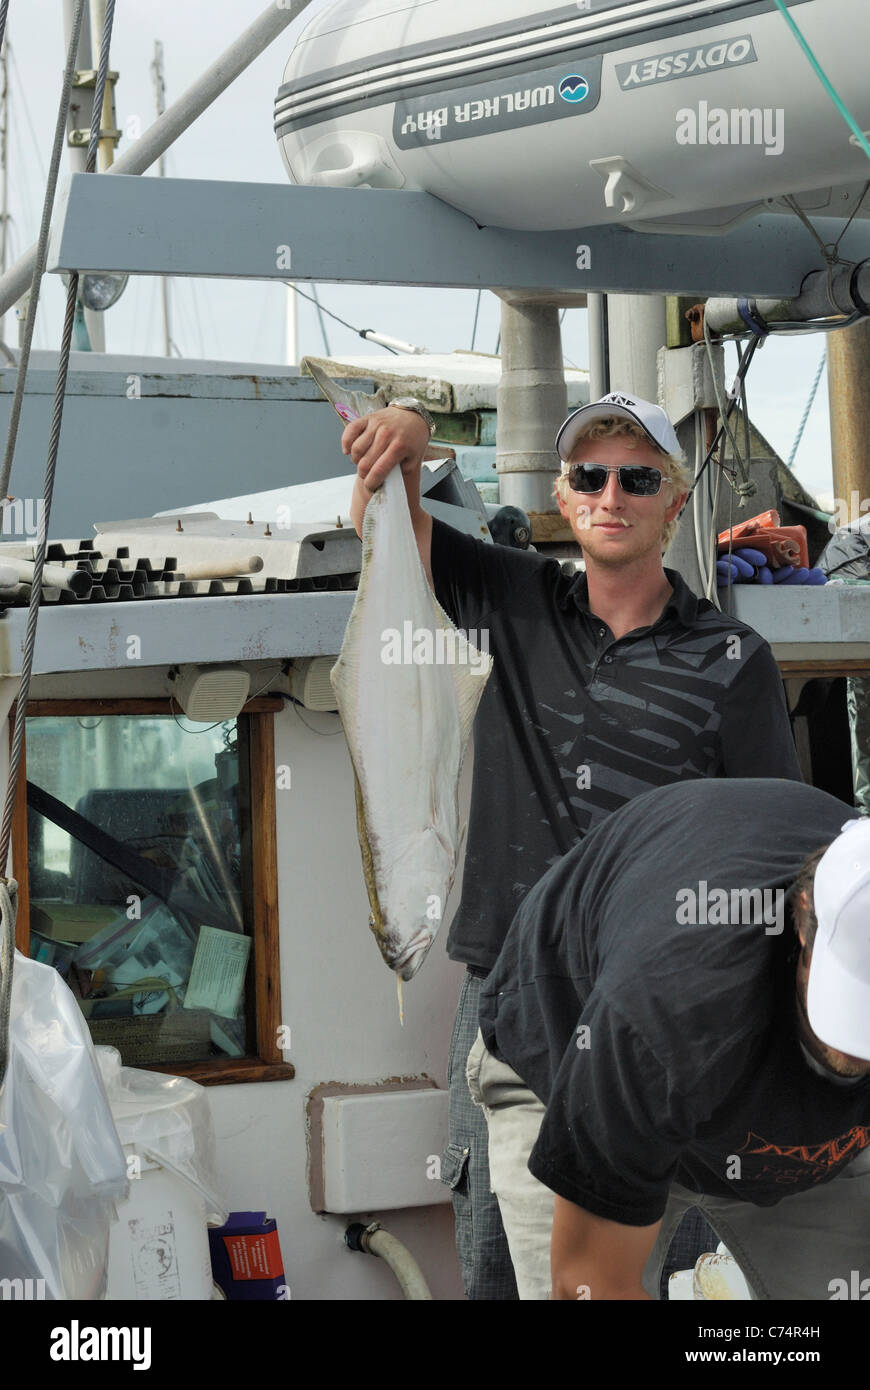 Commercial fish monger displaying to sell a freshly caught Hailbut from their boat. - Stock Image